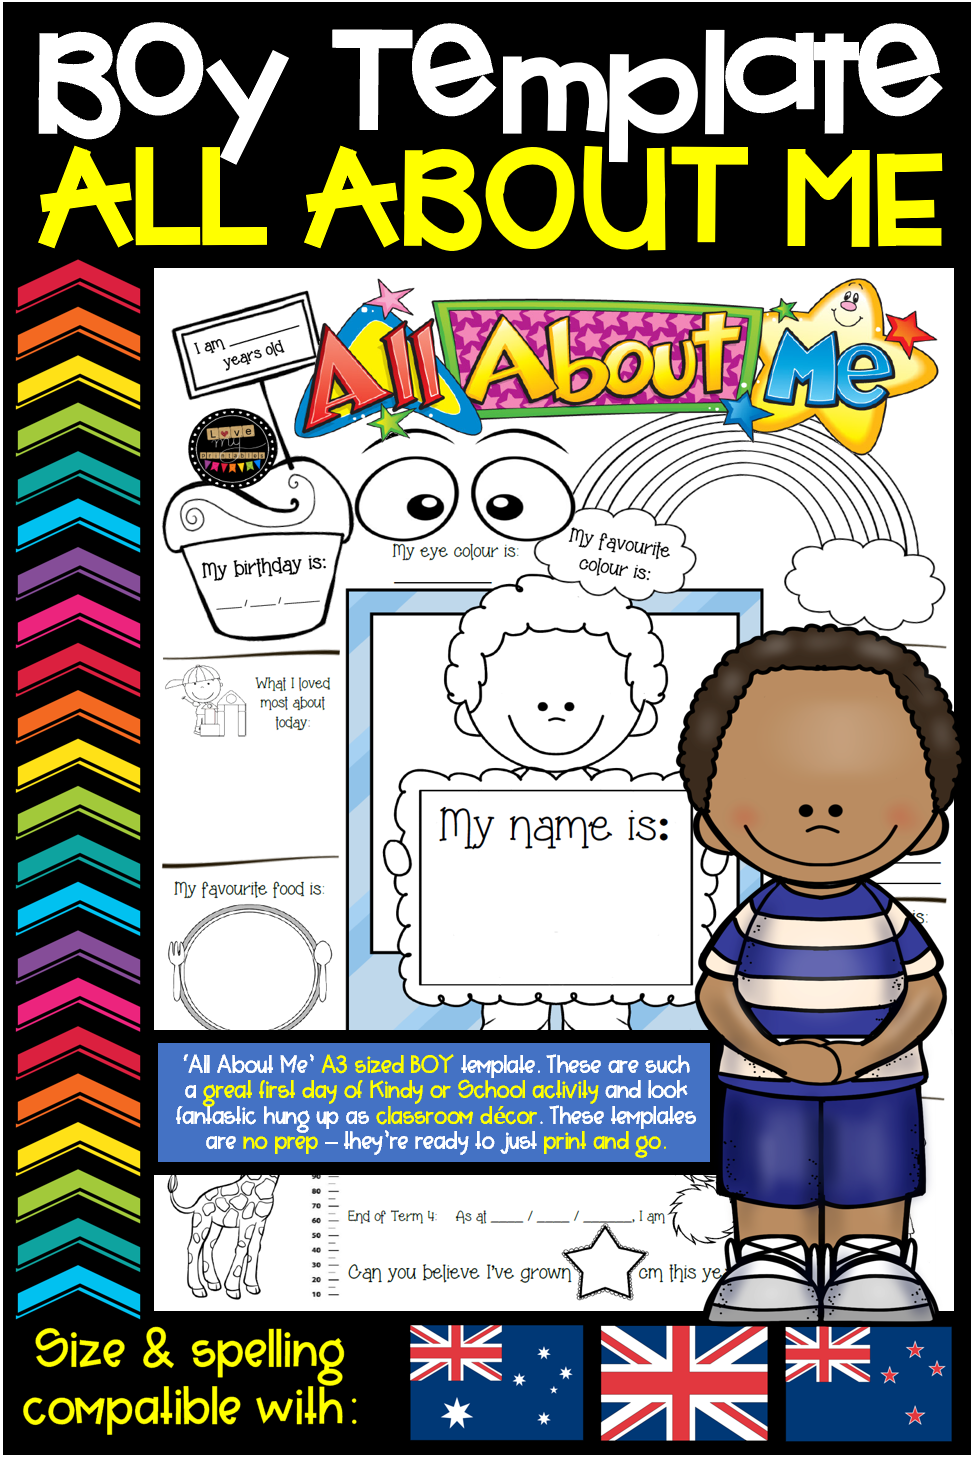 All About Me Template Boys Format A3 Size Aus Nz Uk Compatible About Me Template Kindergarten Activities First Day Activities